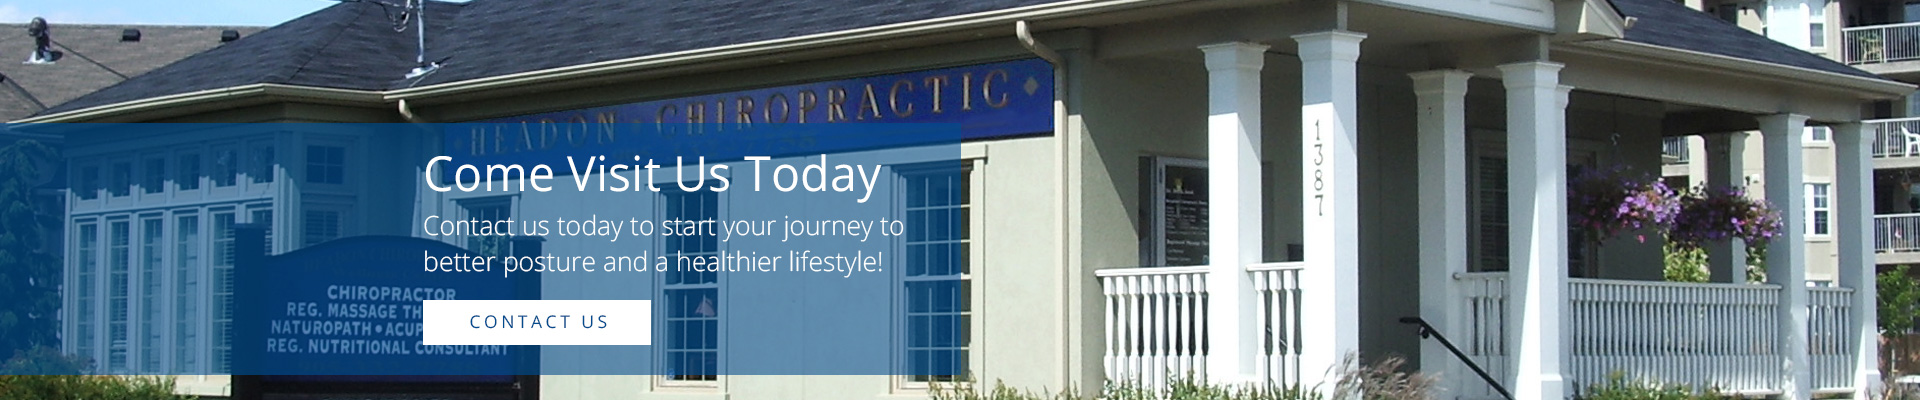 Headon Chiropractic Contact